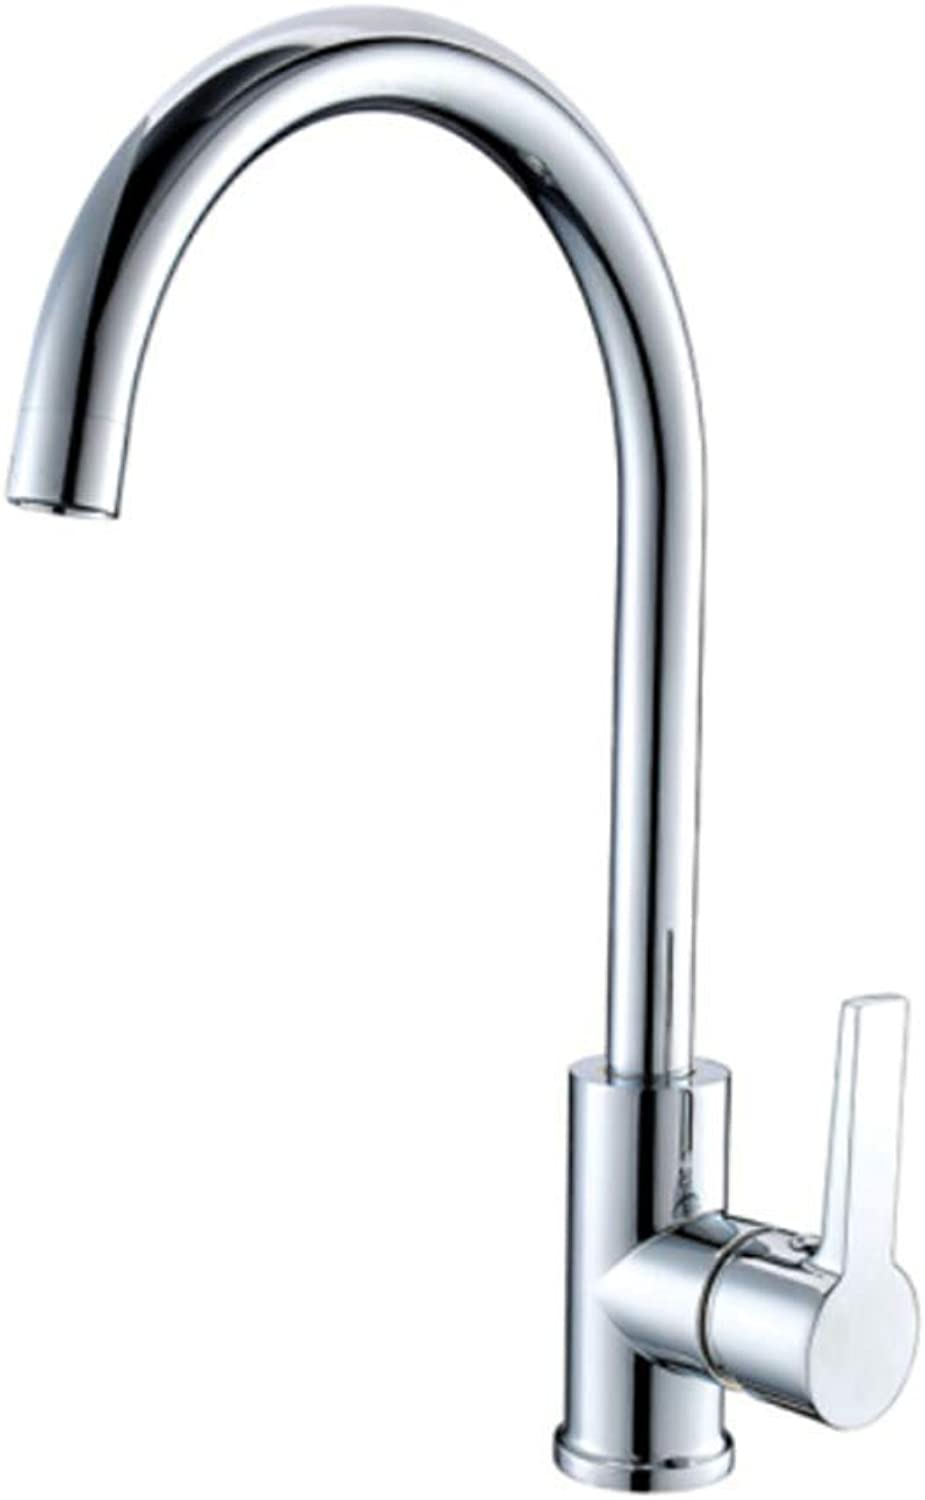 Pull Out The Pull Down Stainless Steelall Copper Kitchen Faucets, Swivel Faucets, Vegetable Pots, Faucets, Hot and Cold Water Faucets.